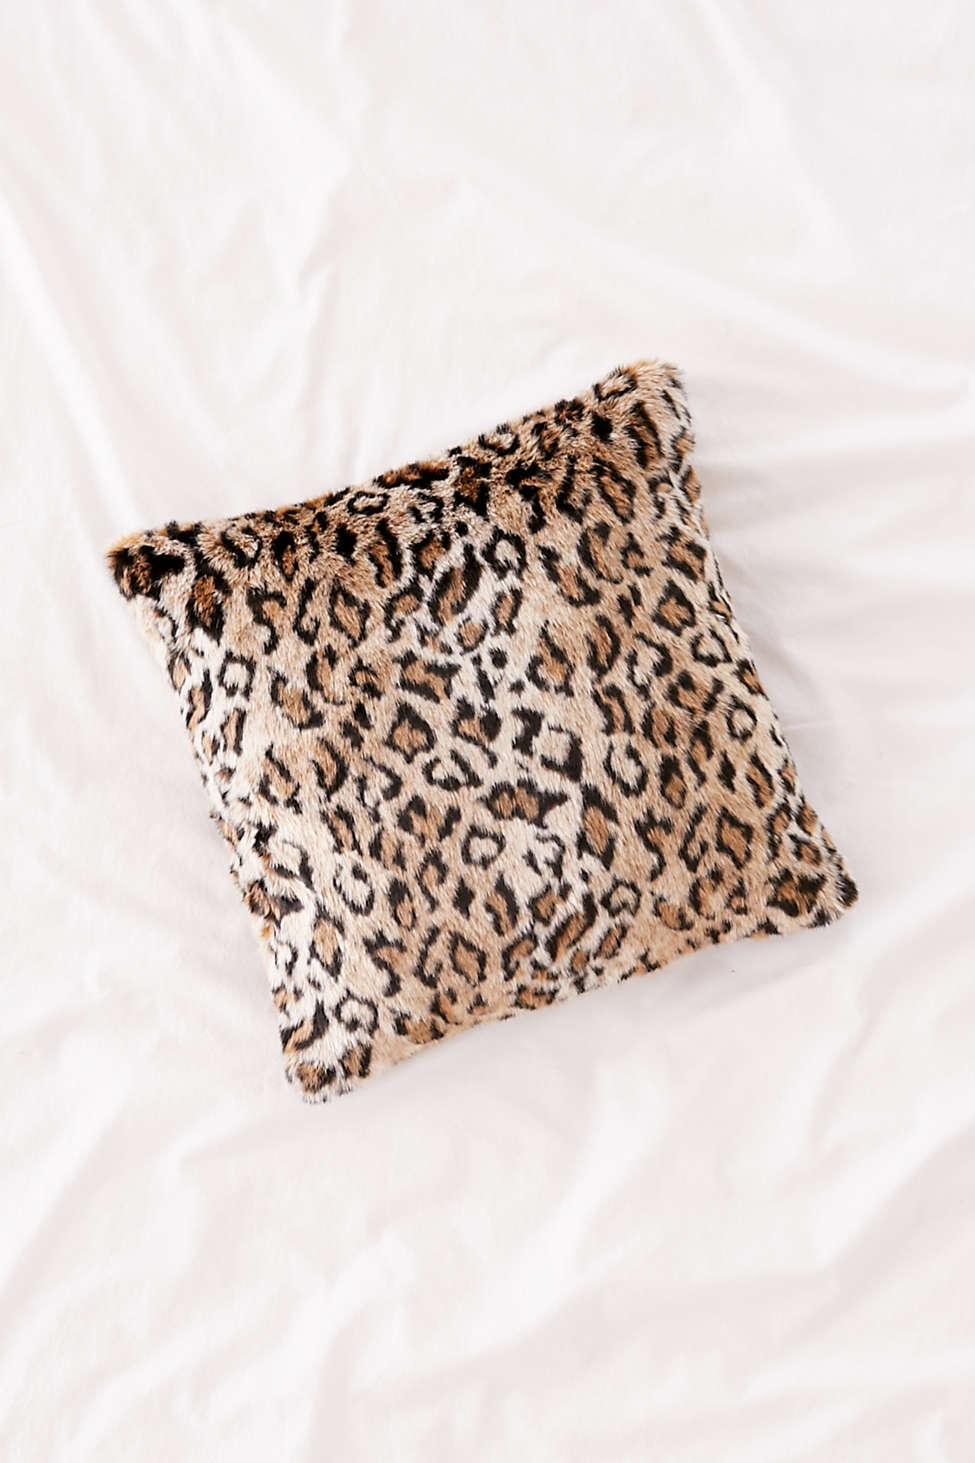 Slide View: 1: Leopard Print Faux Fur Pillow